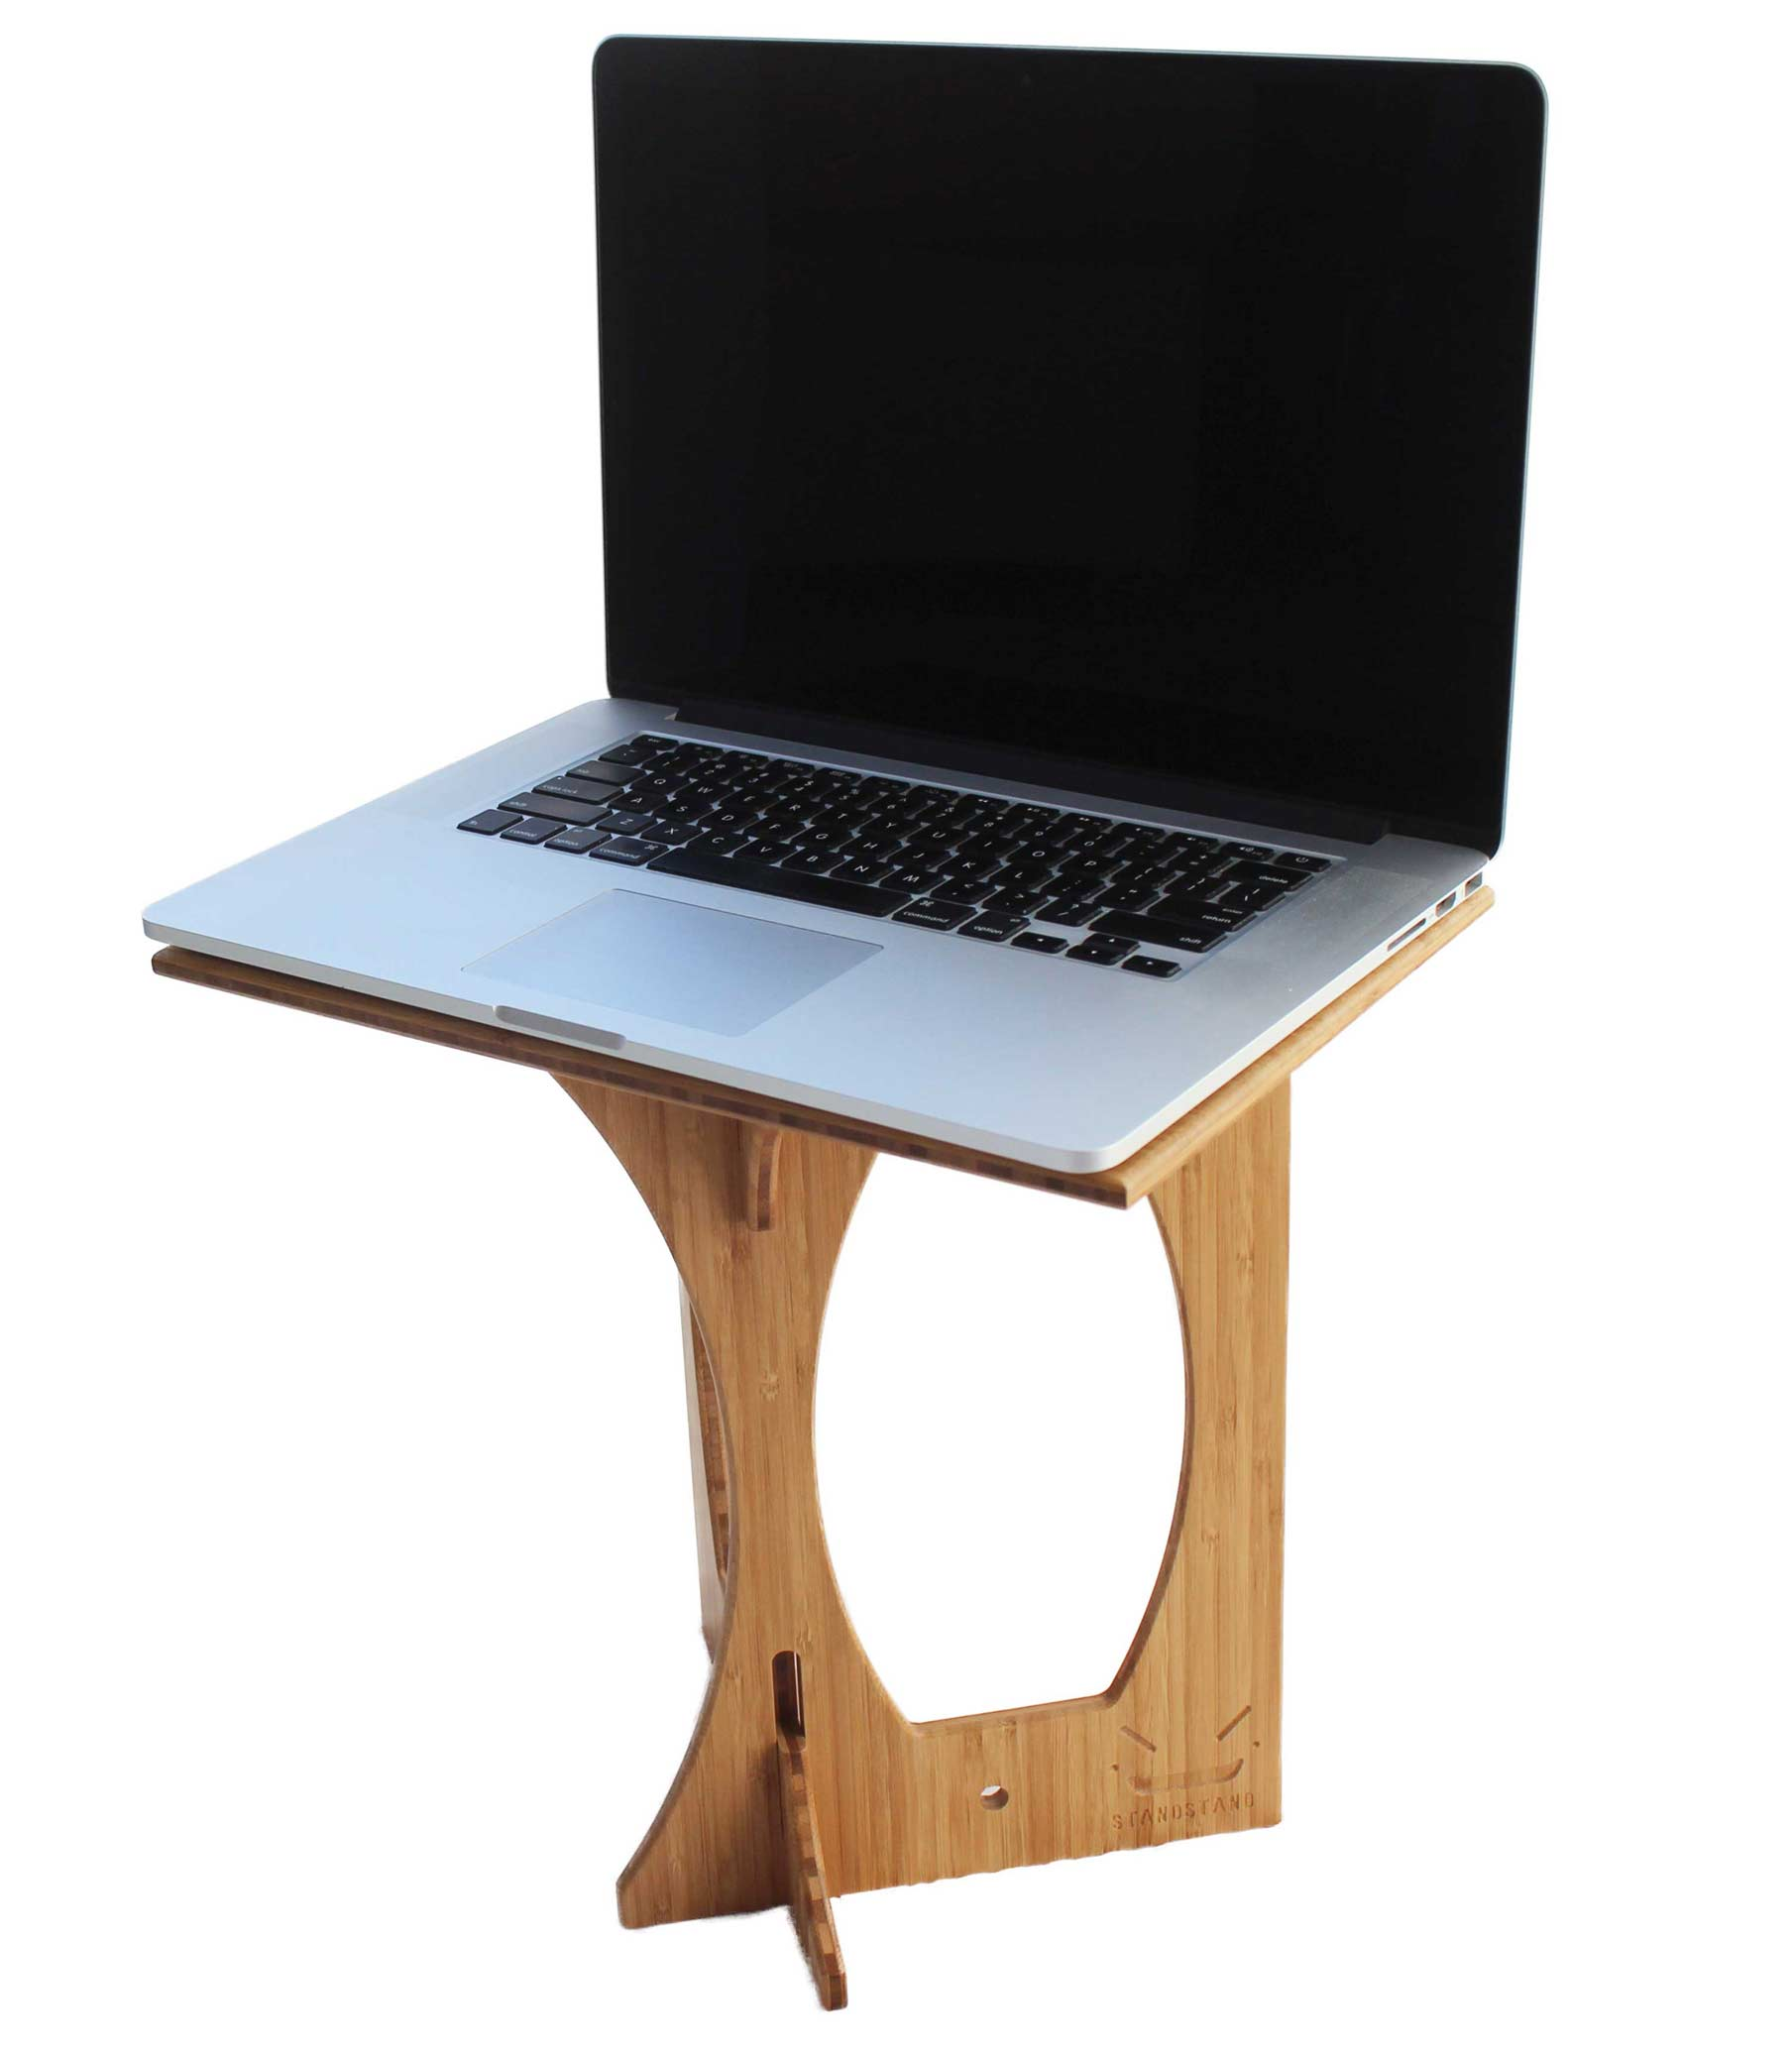 The Portable Standing Desk Laptop Stand StandStand